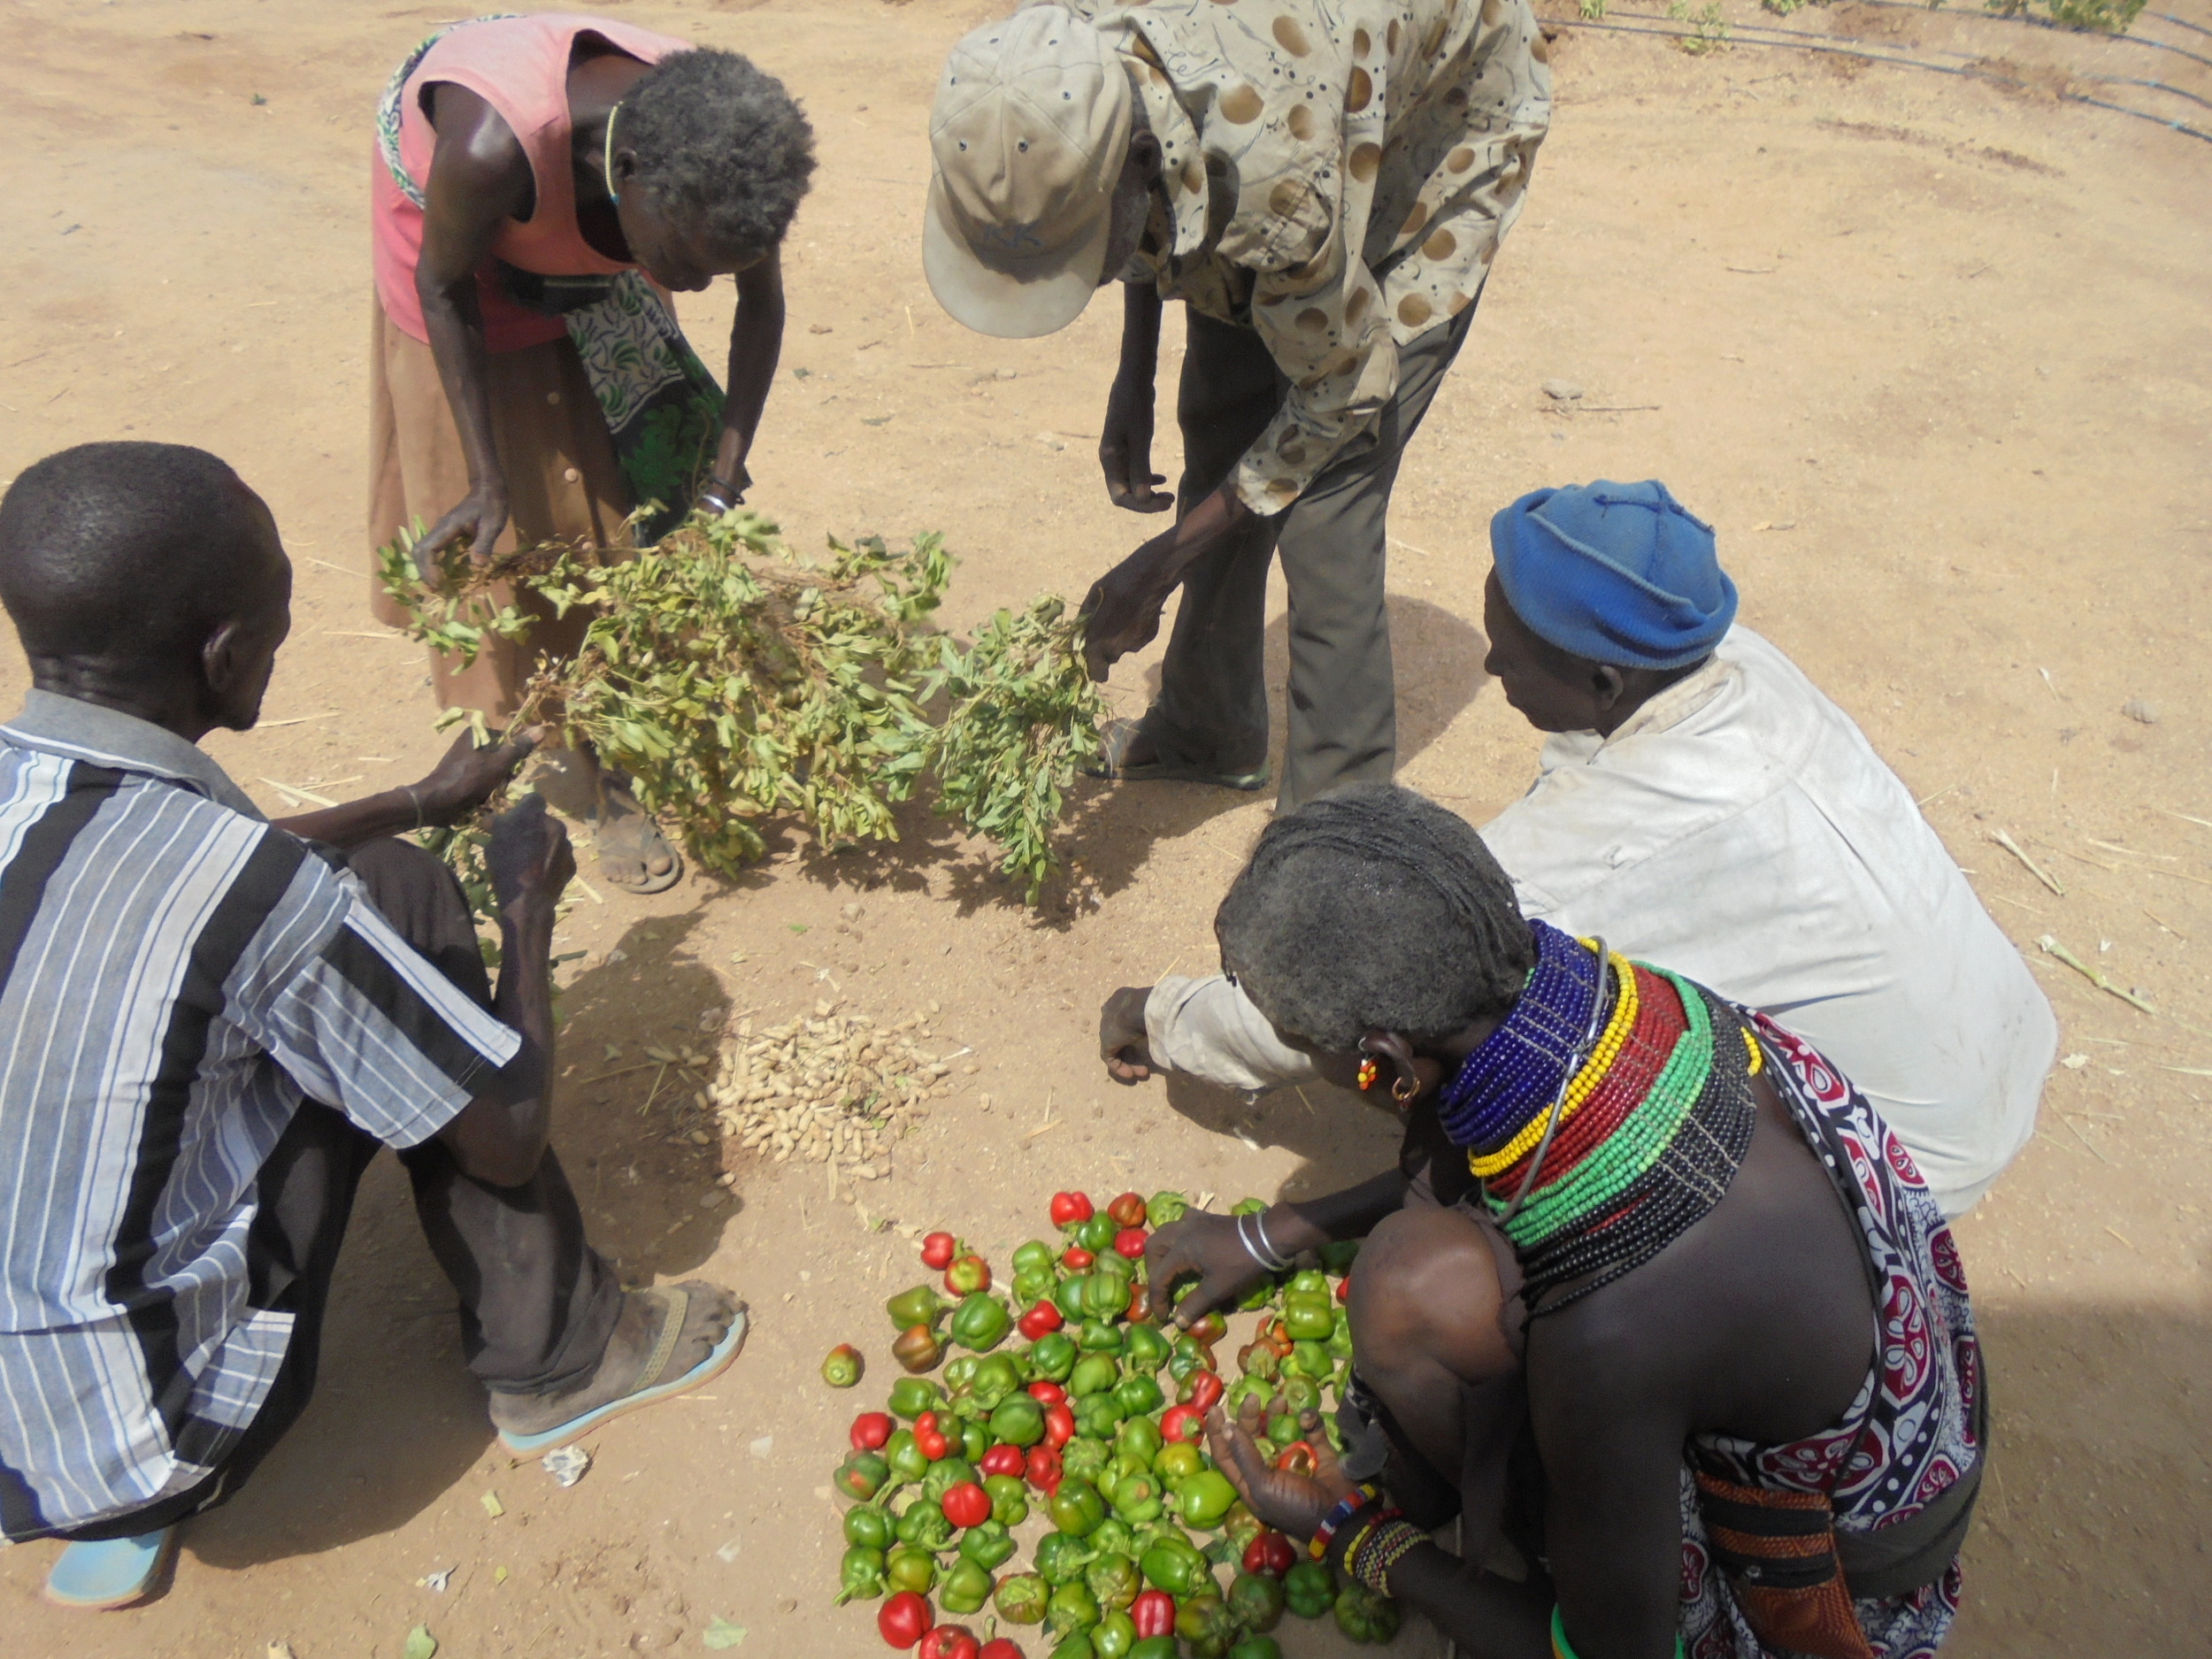 Photo: Achukule members harvesting and preparing their produce for sale       in Lokichar, Turkana county Kenya in February 2016.